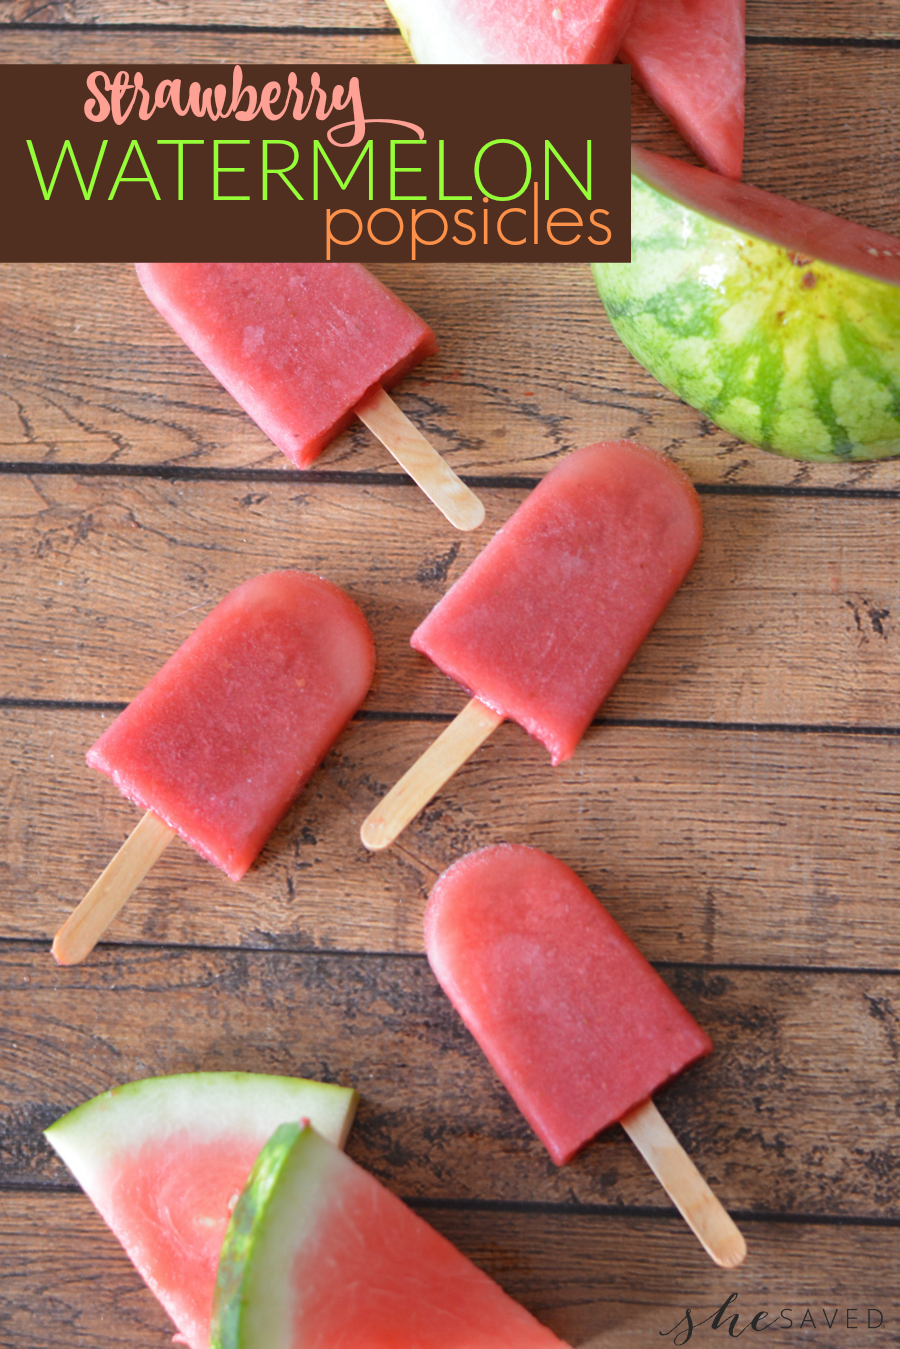 Perfect for summer this Watermelon Popsicles Recipe will be a huge hit on those hot days of summer!